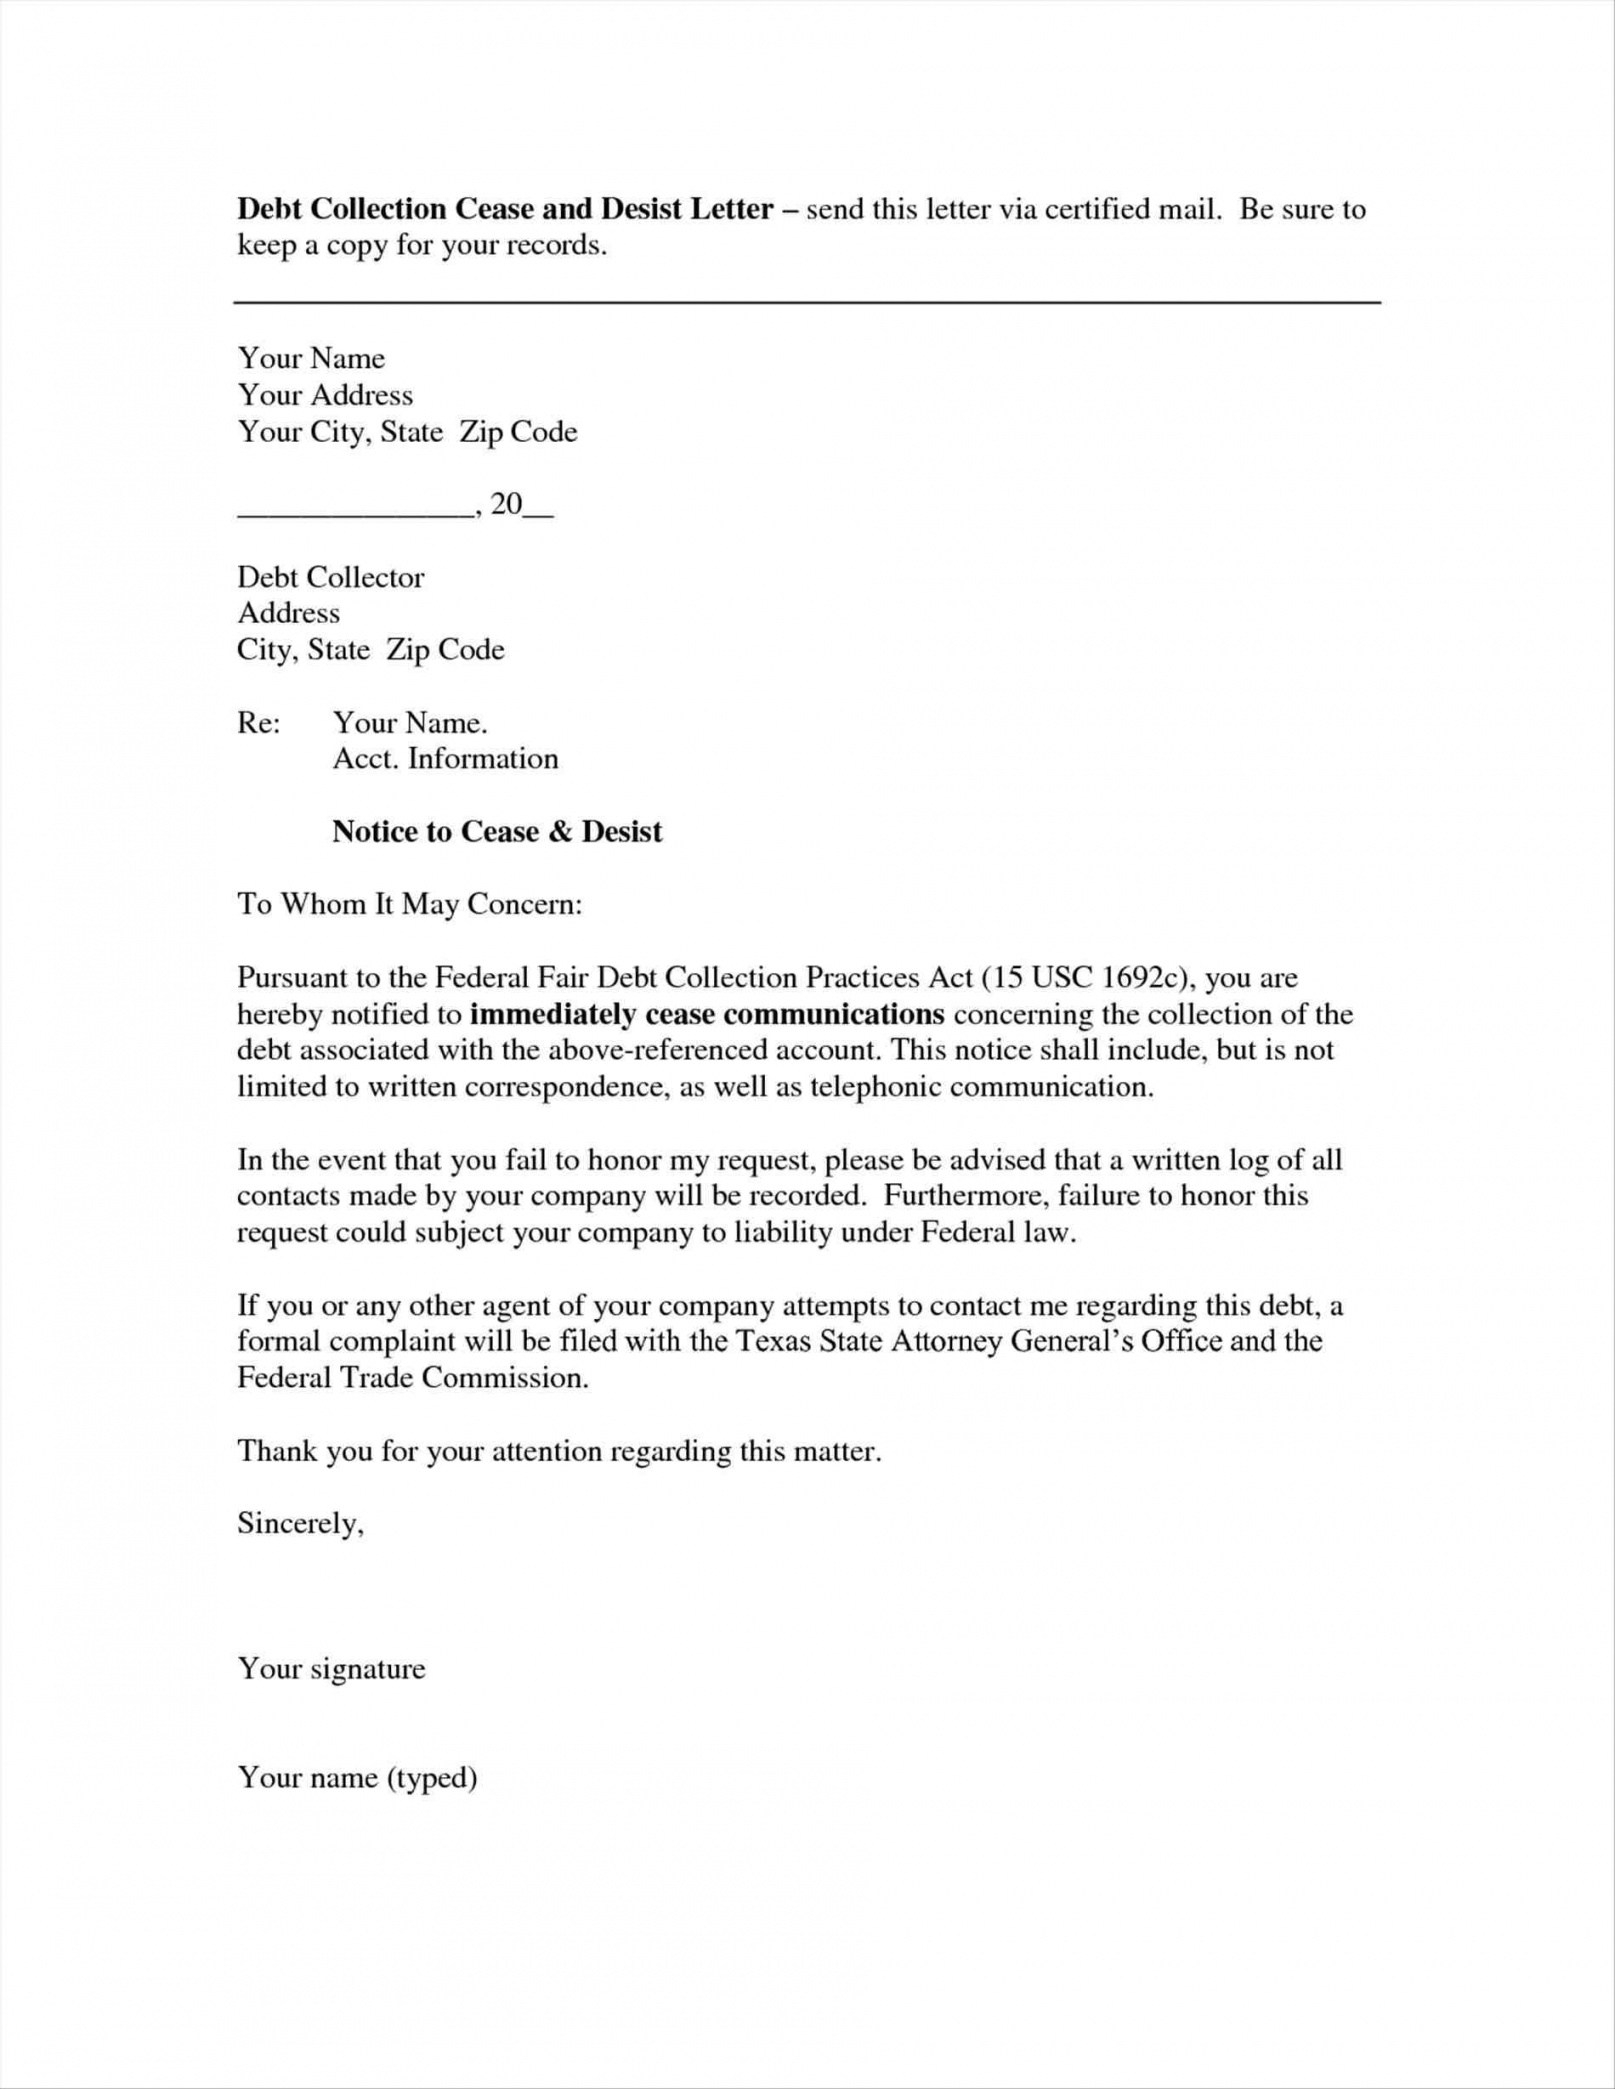 Cease and Desist Creditor Letter Template - How to Write Debt Collection Letter Letter format formal Sample